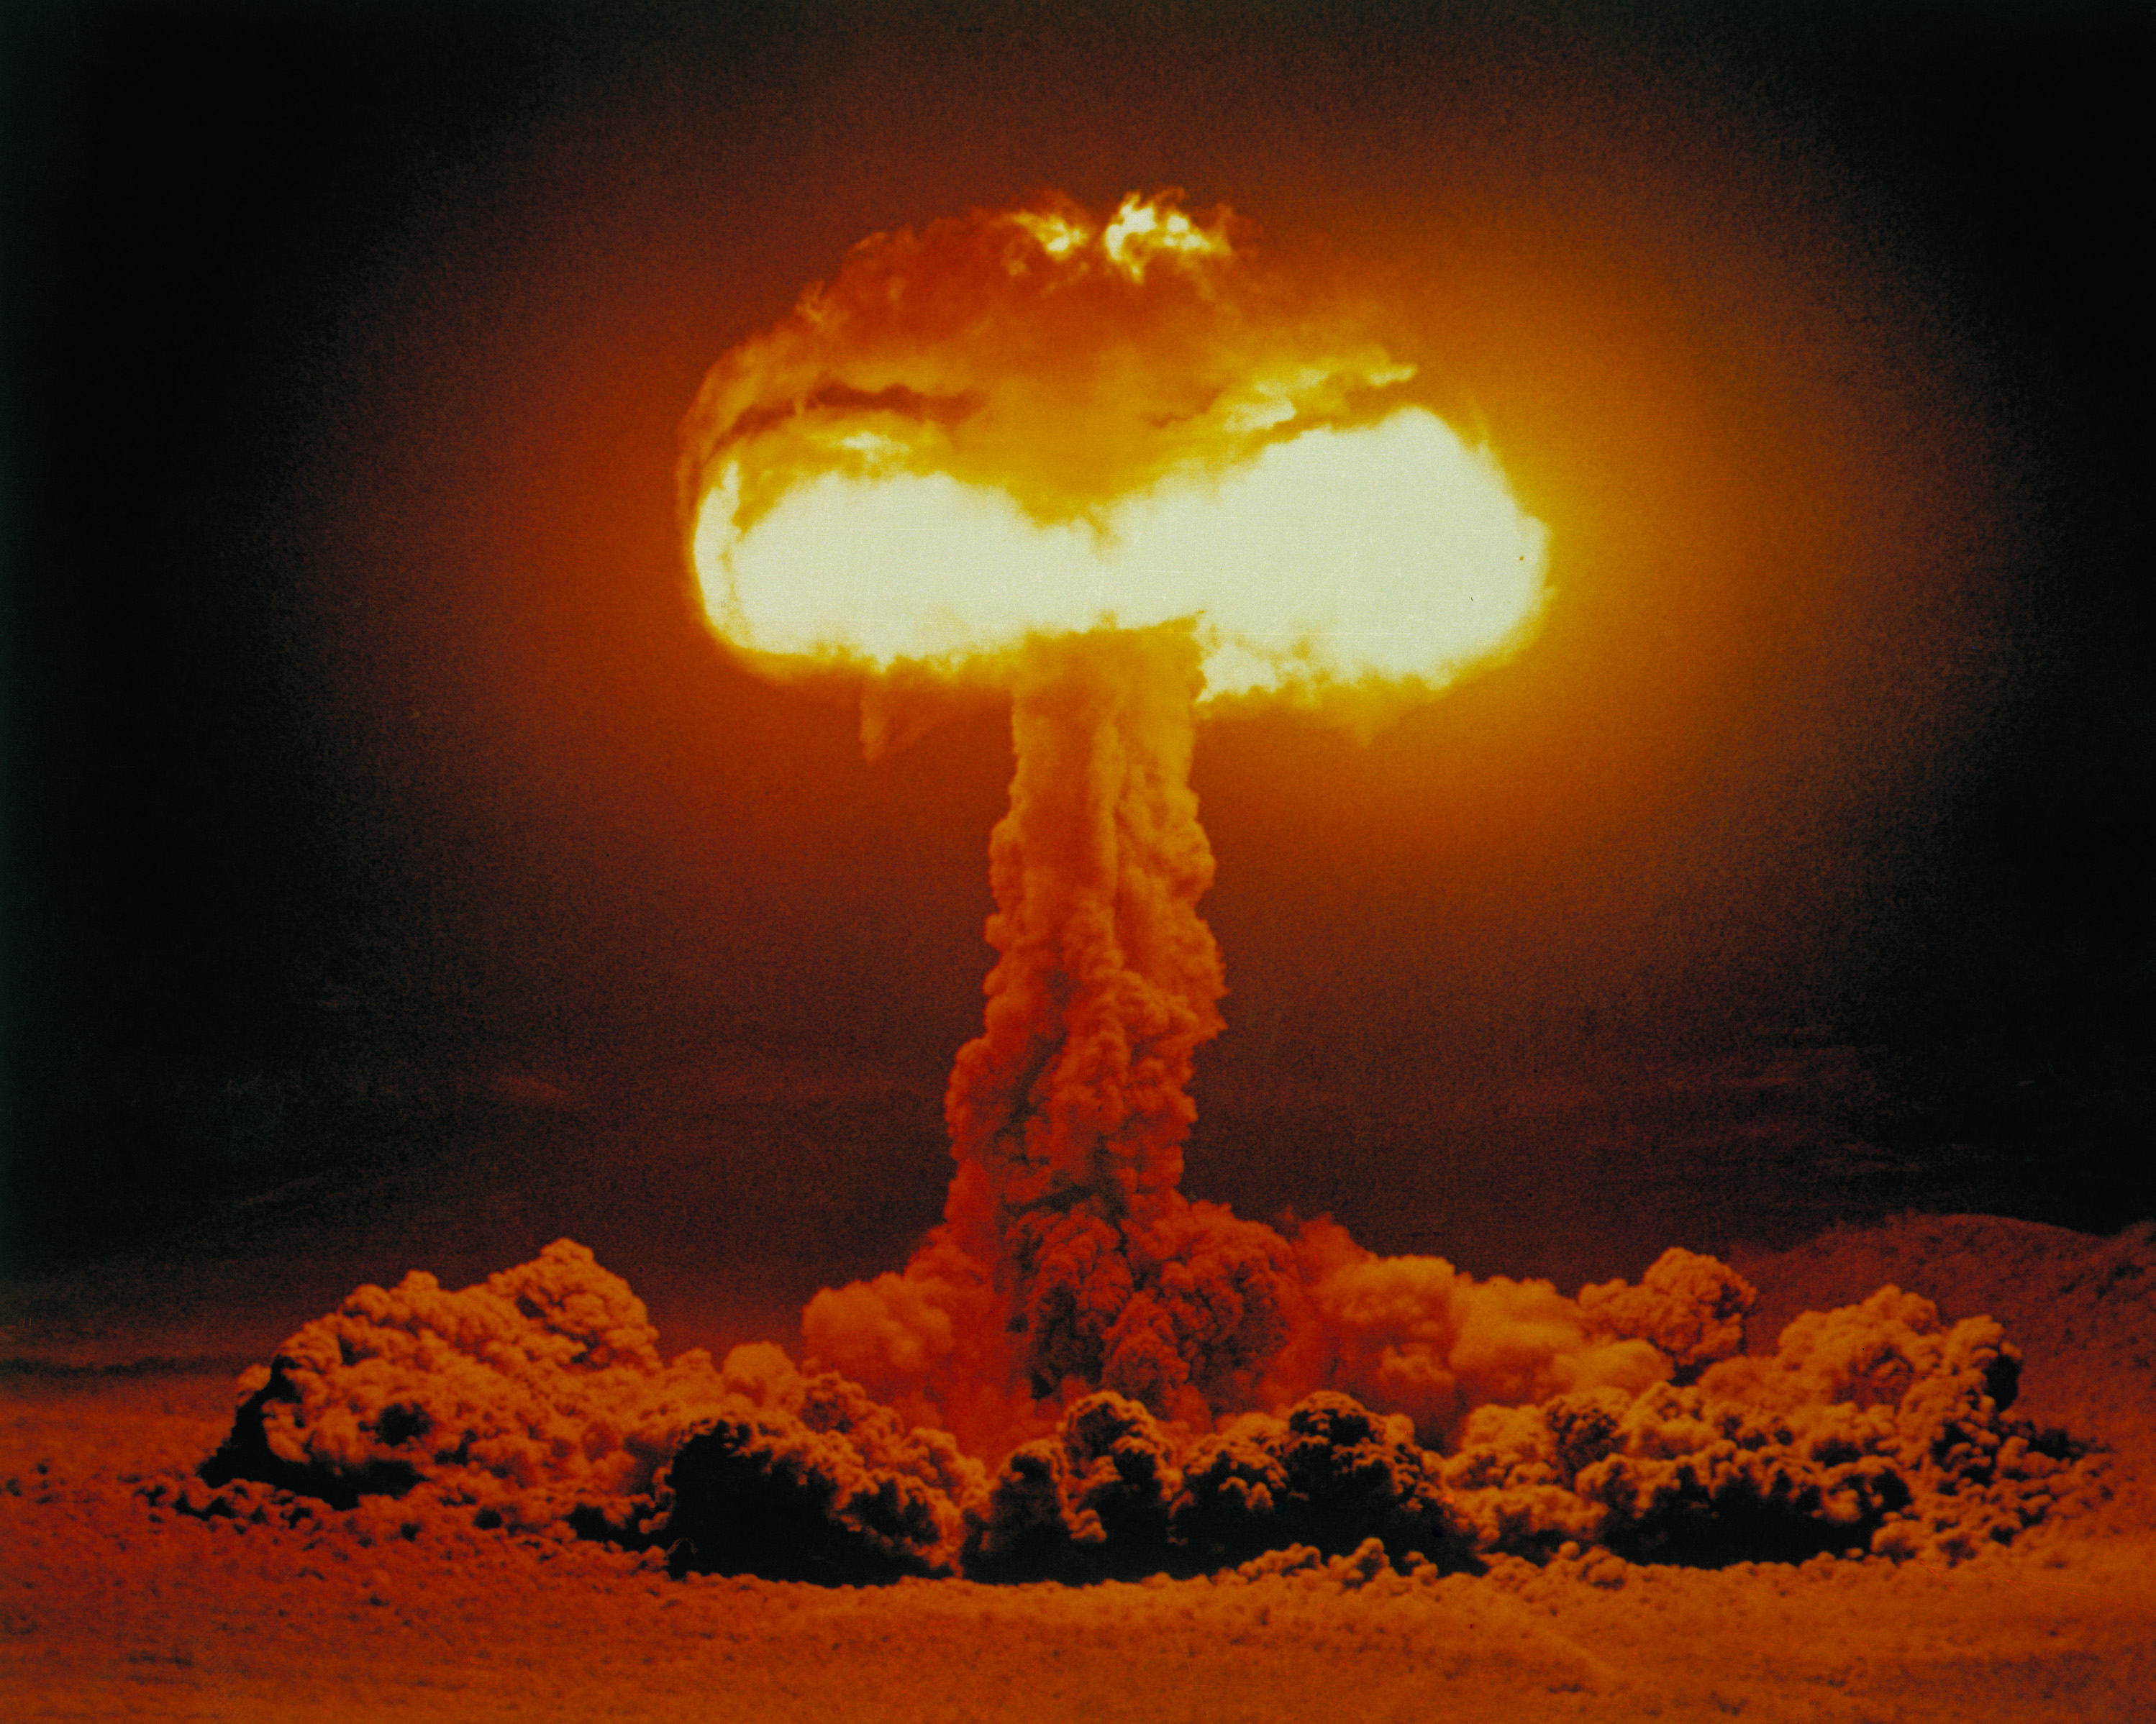 declassified videos of cold war nuclear tests go viral